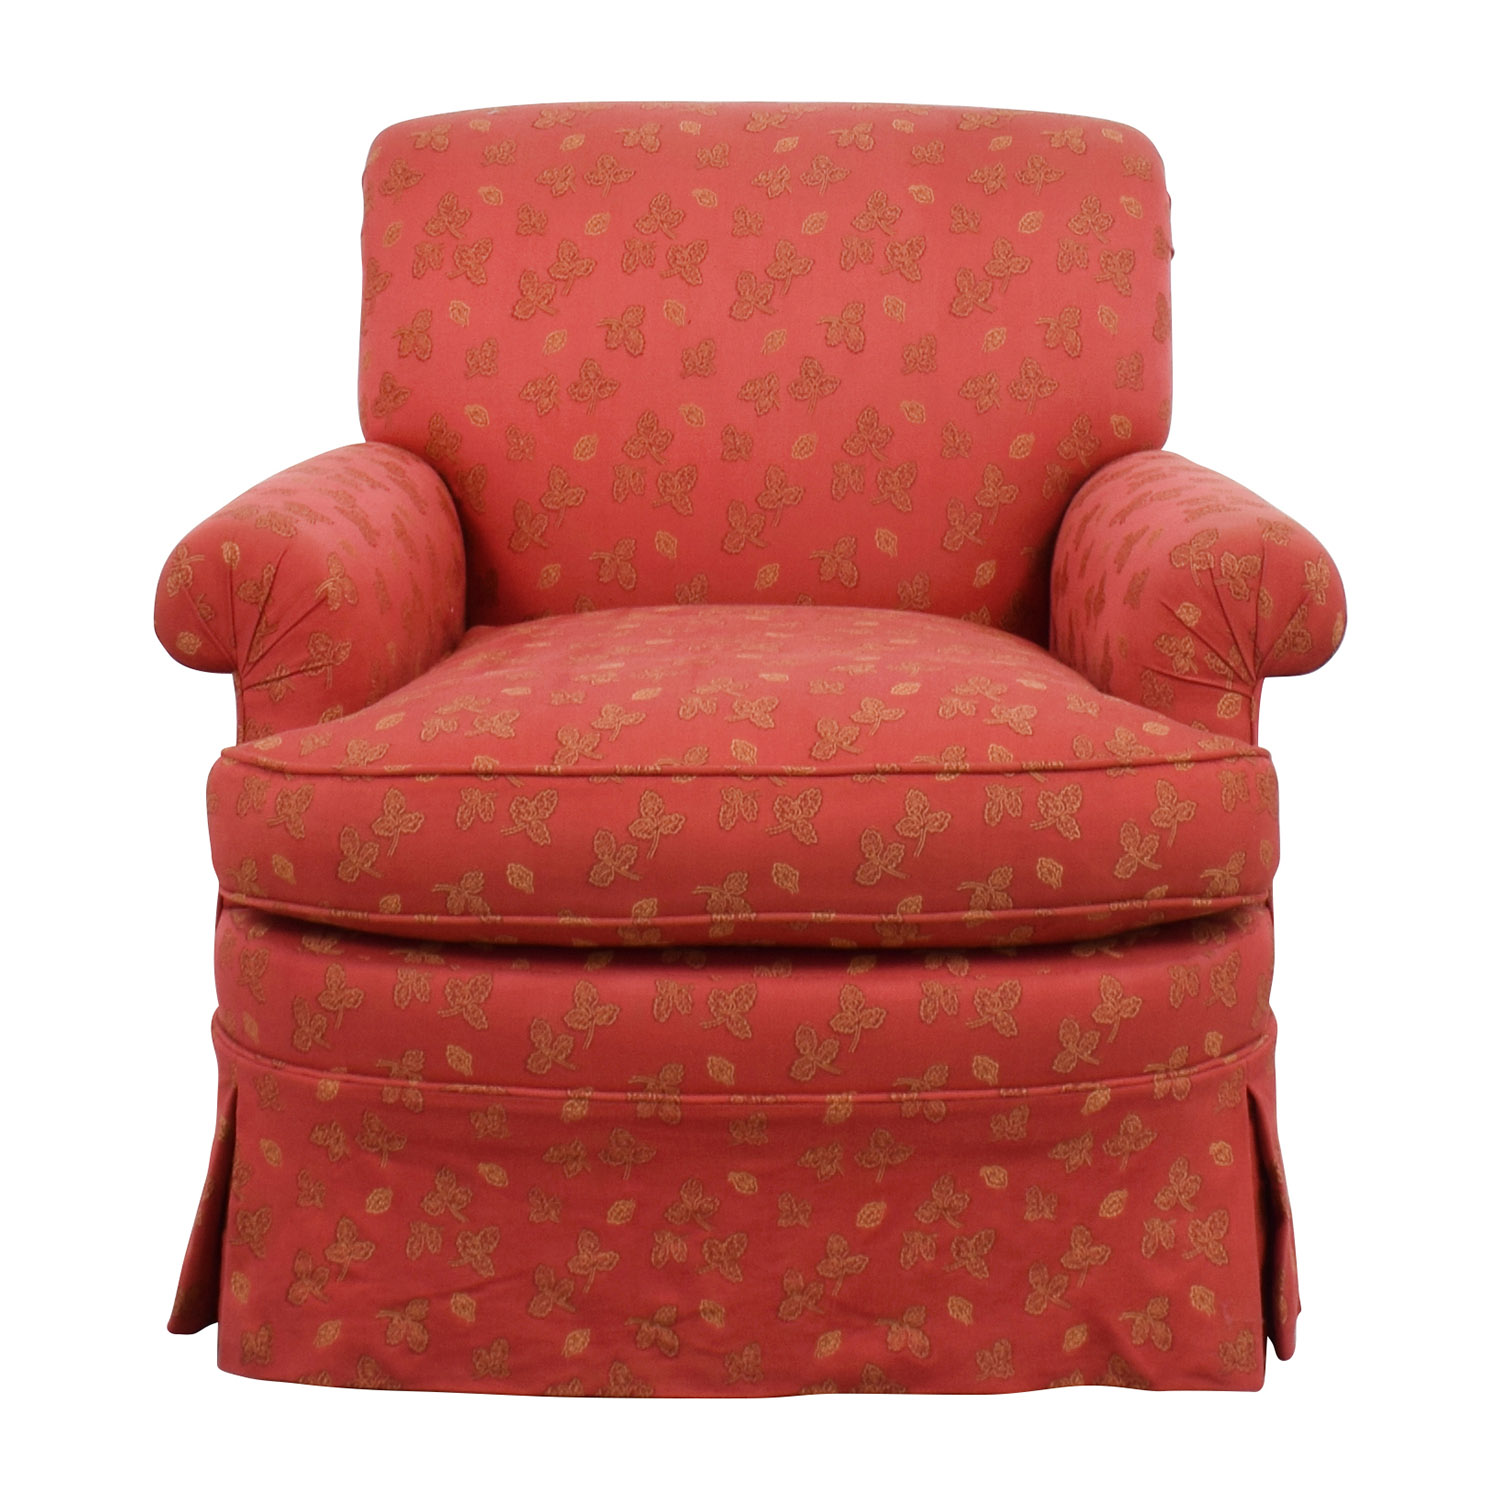 Shop Custom Red Upholstered Skirted Accent Chair Online ...